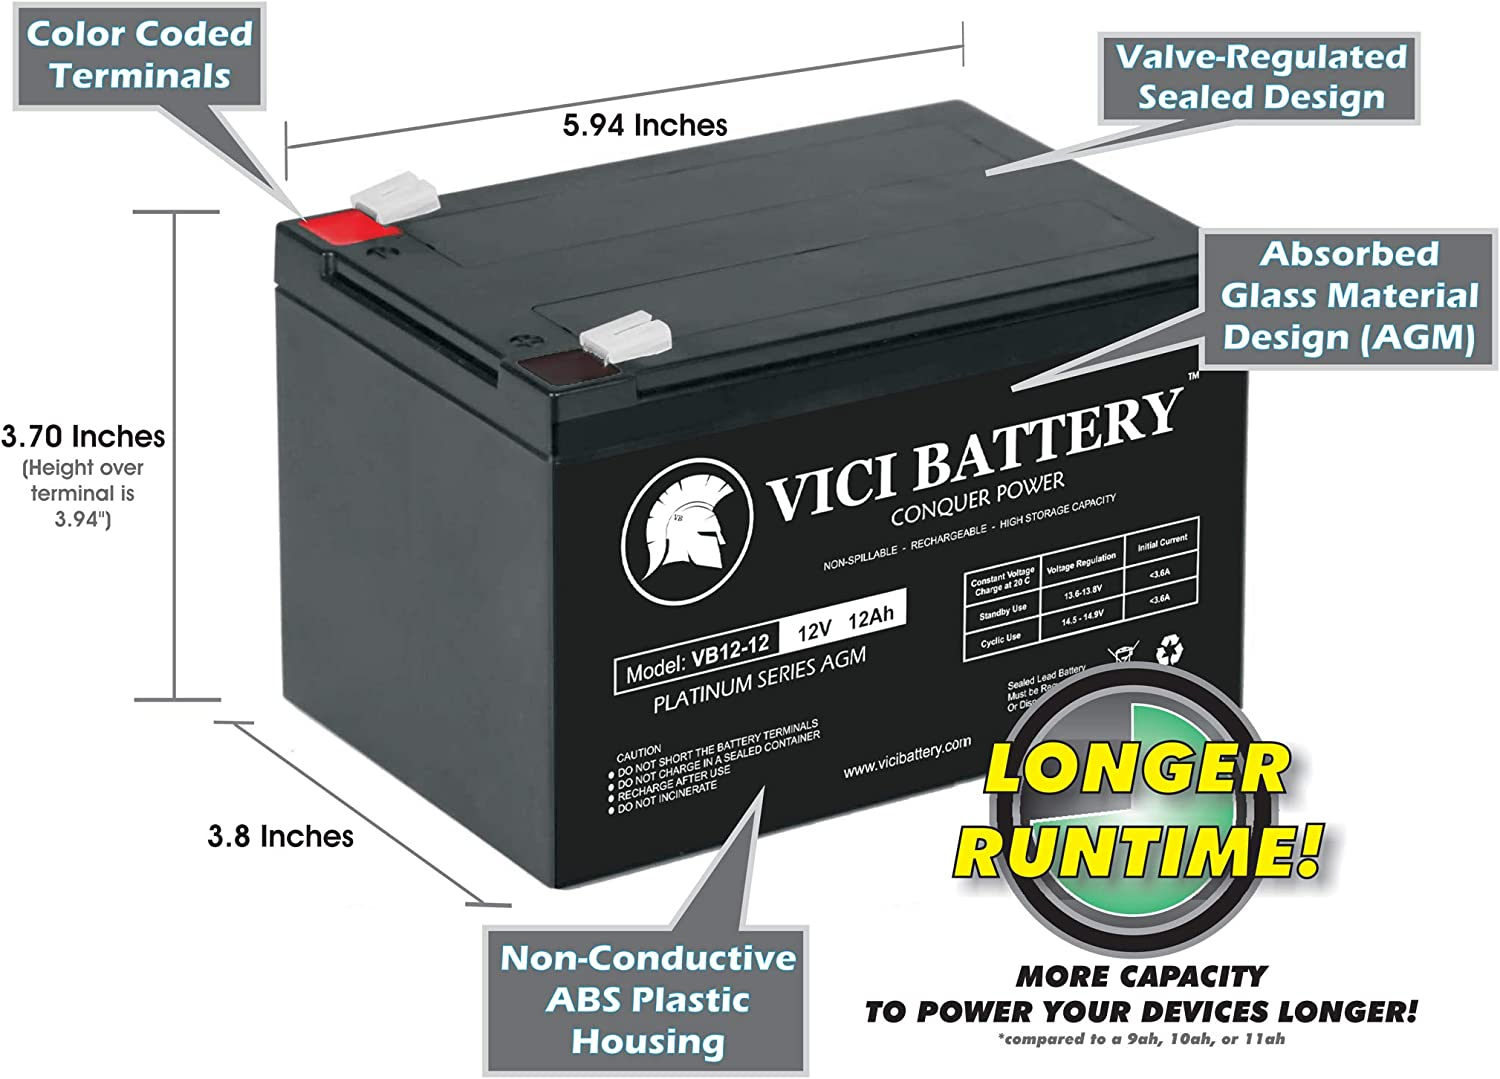 VICI Battery 12V 12AH Compatible Battery for 6-DZM-12 APC Scooter Medical 4 Pack Brand Product